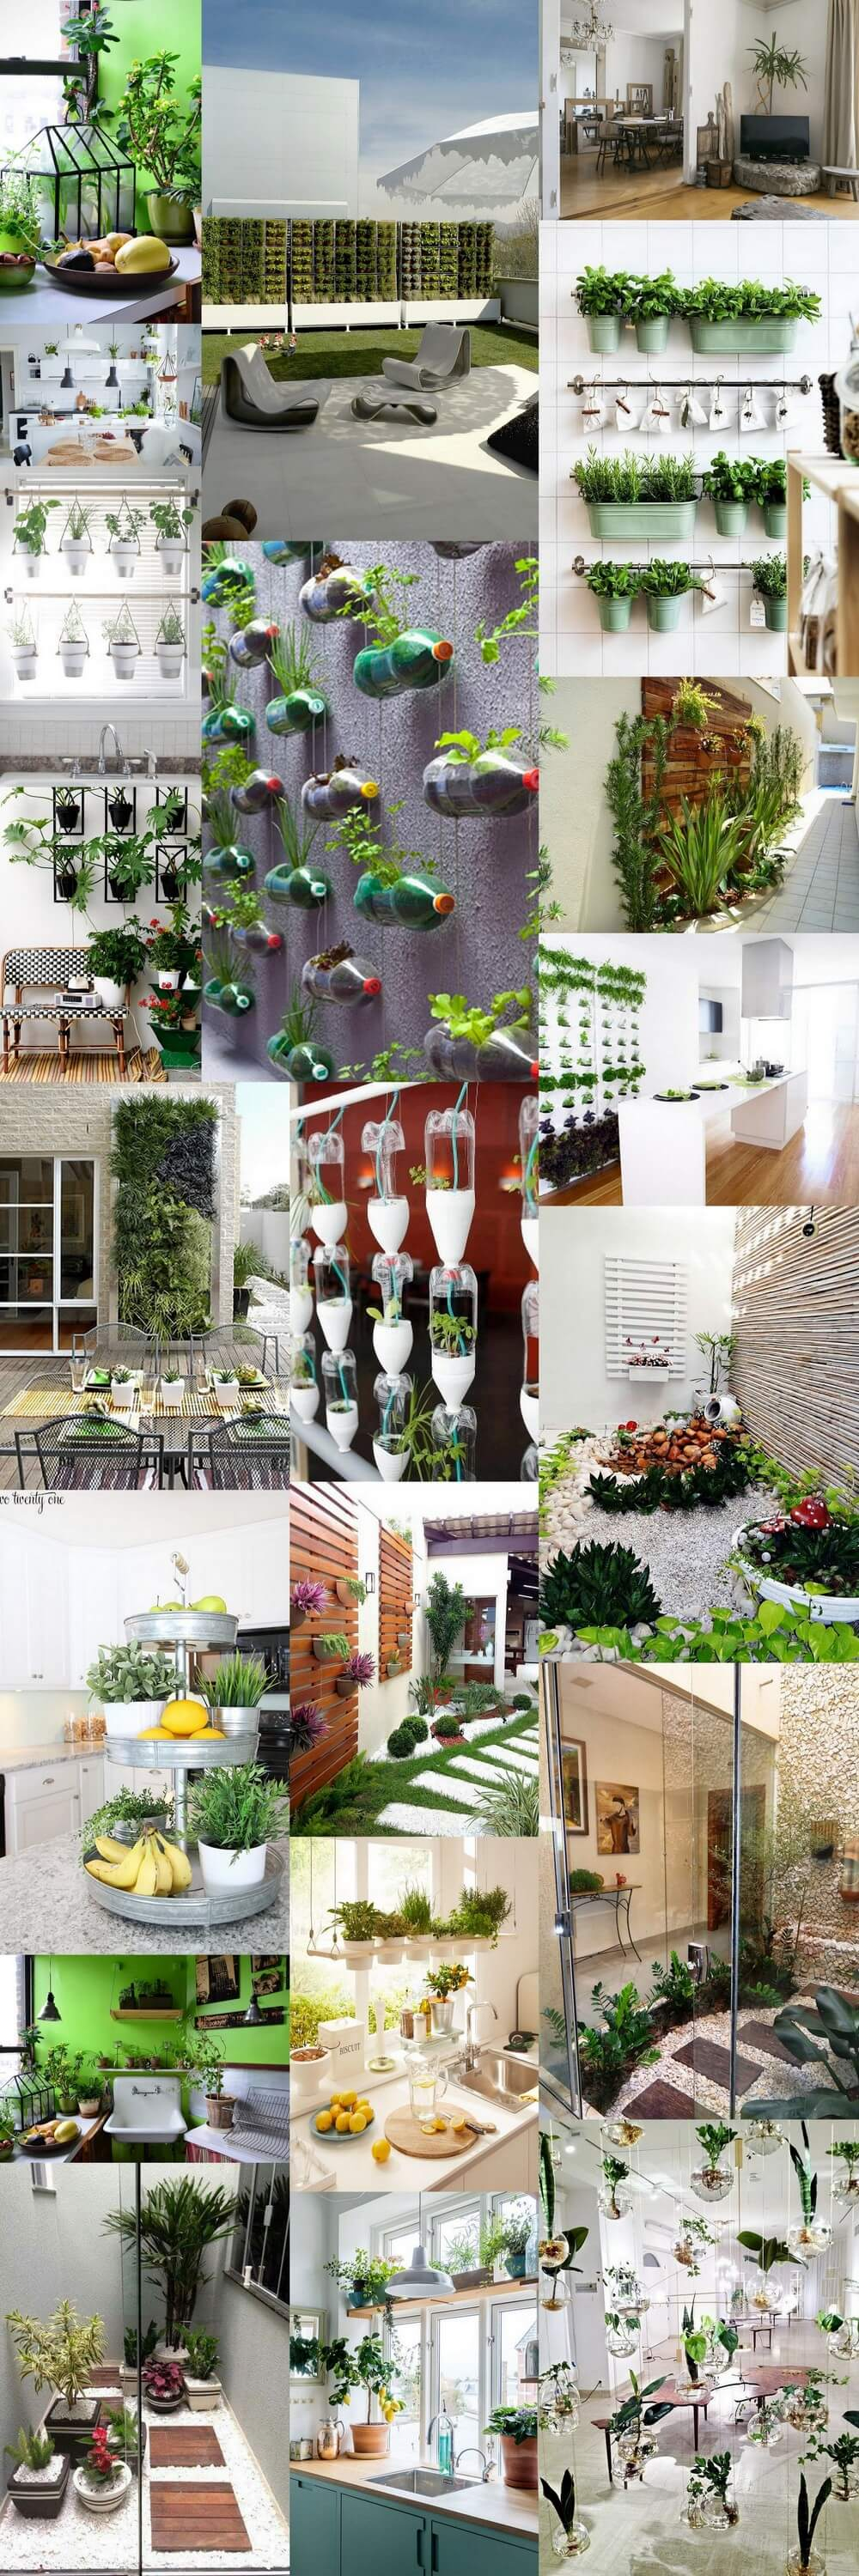 DIY-Small space- indoor-Outdoor-garden-ideas